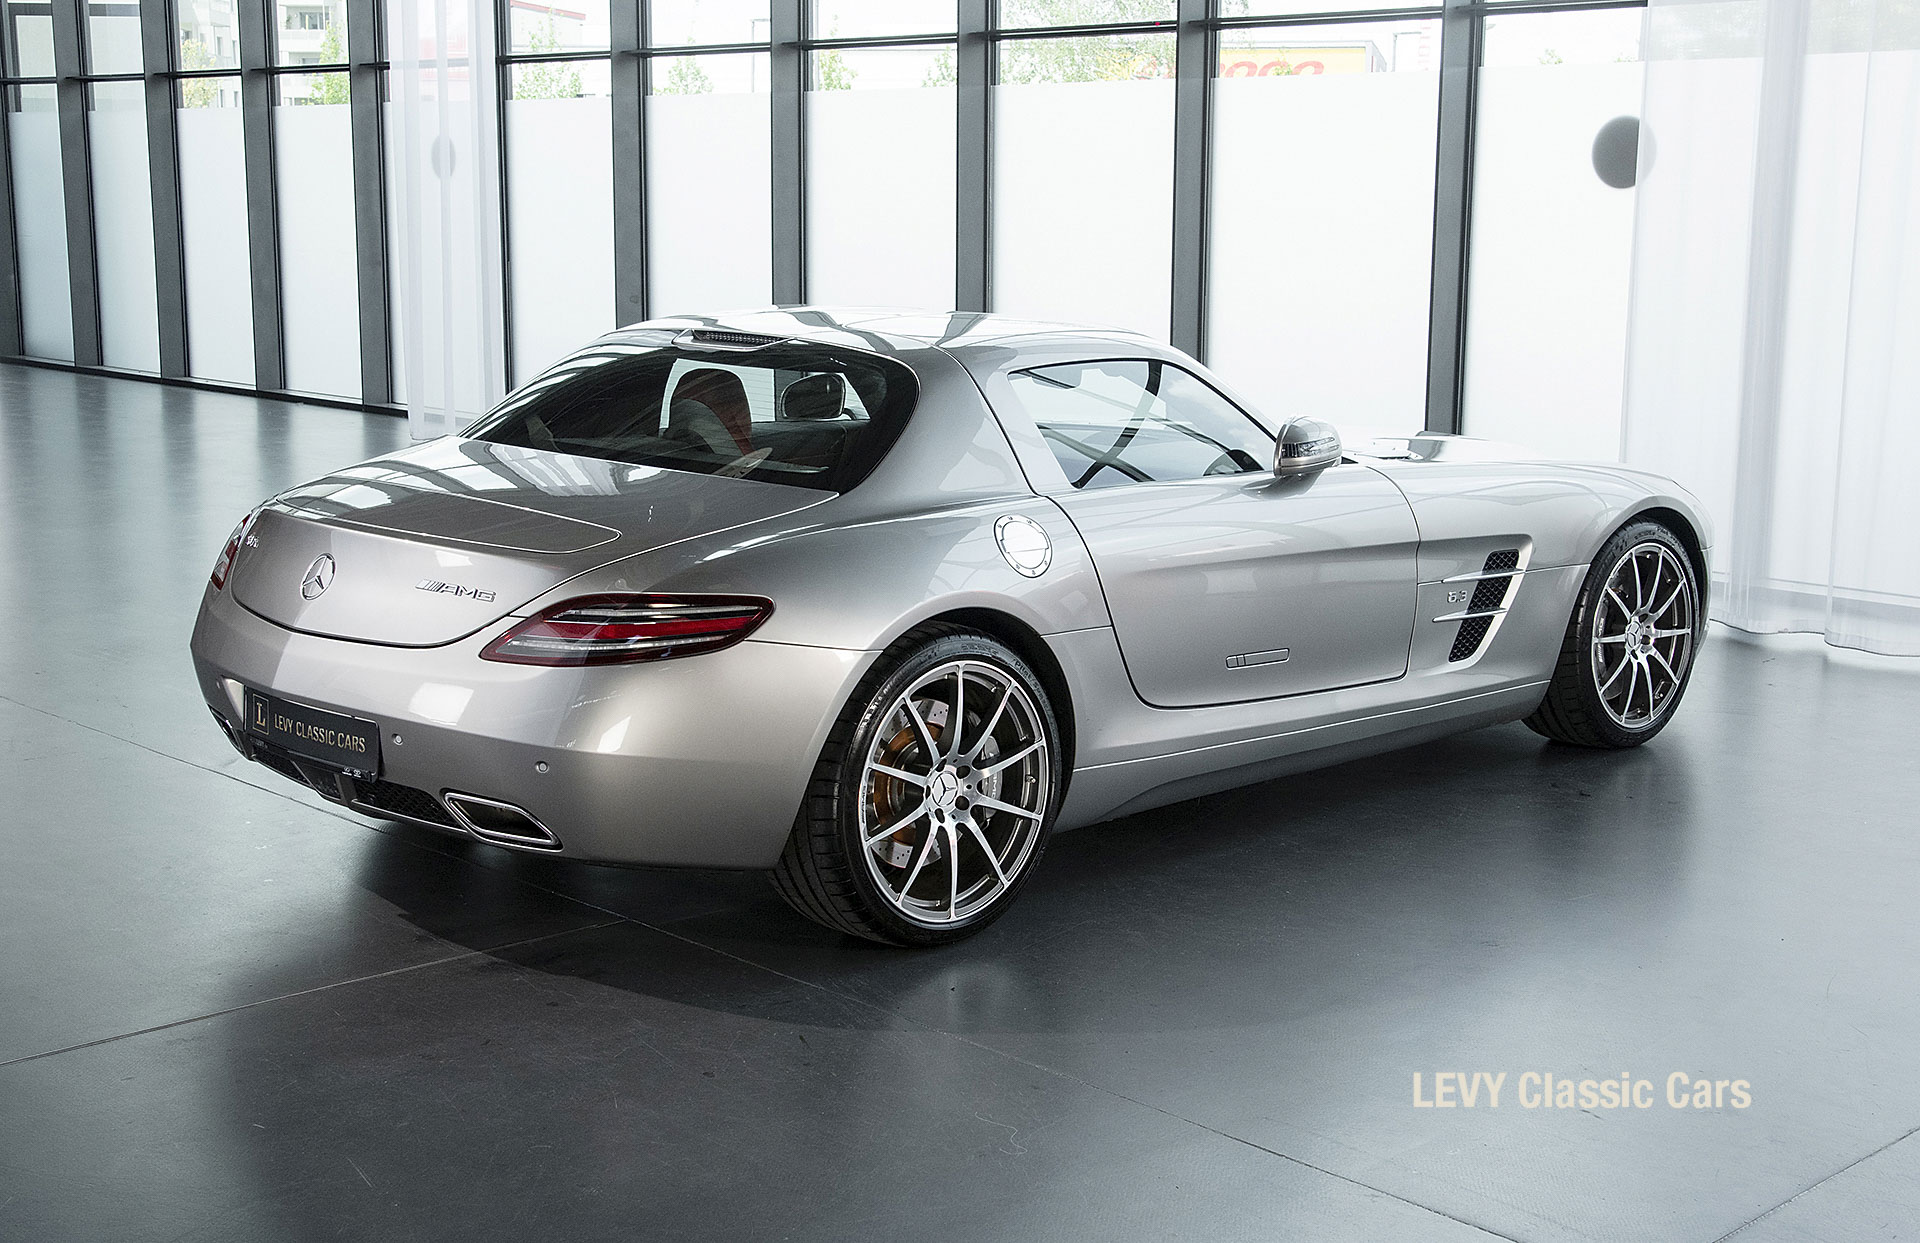 MB SLS AMG 6,3 Coupe 05633 063